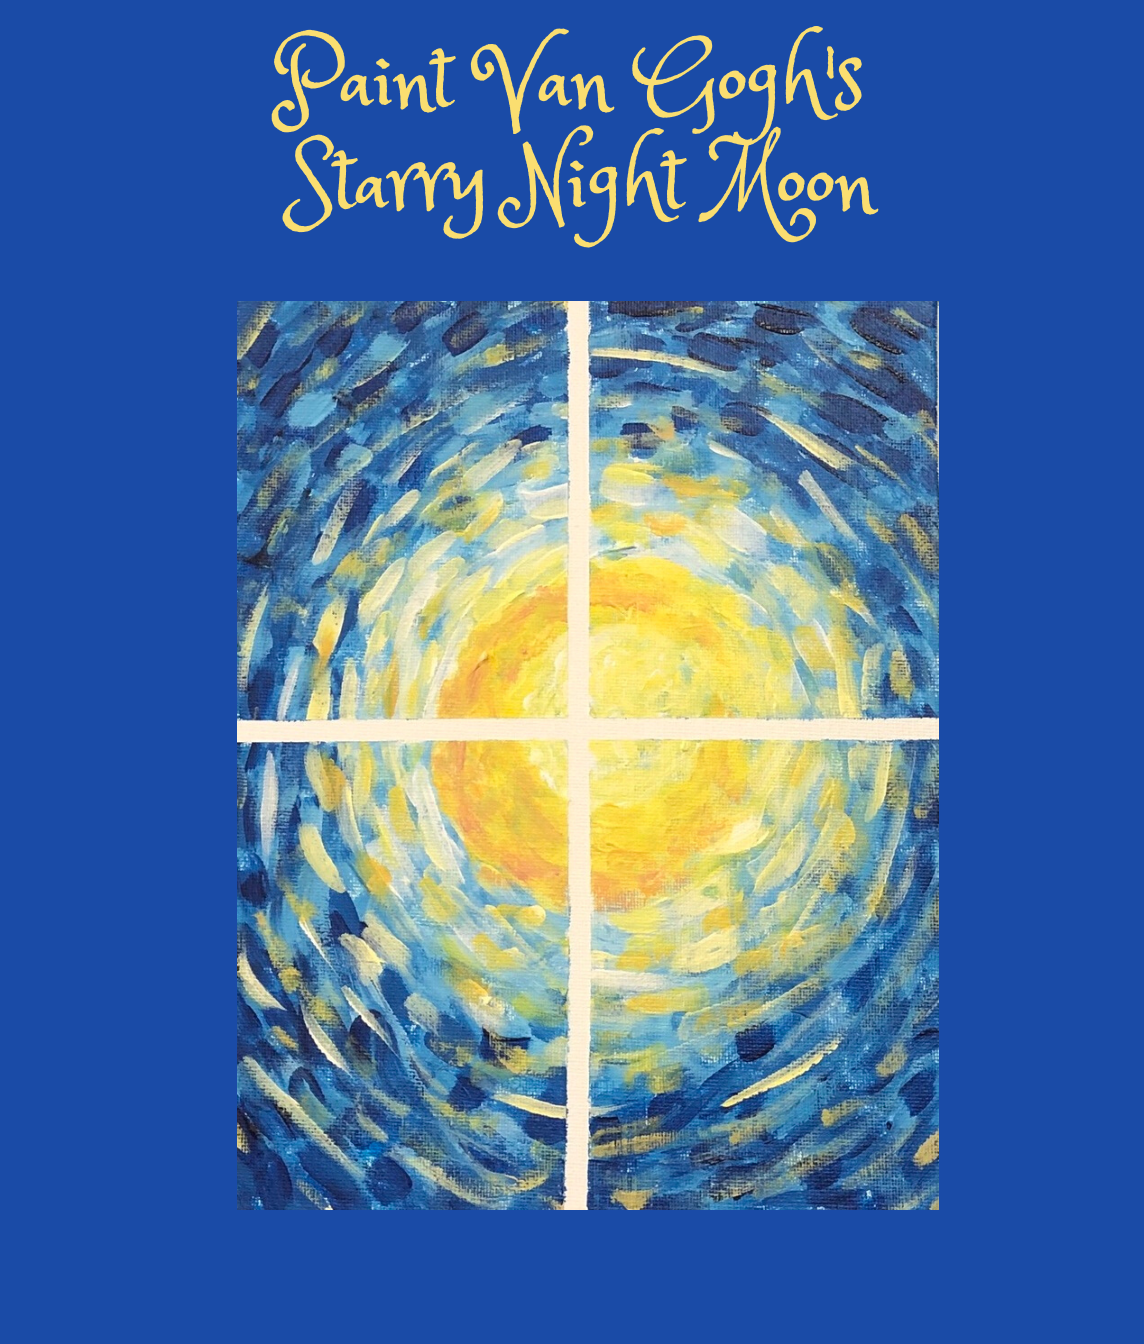 Paint Van Gogh's Starry Night Moon